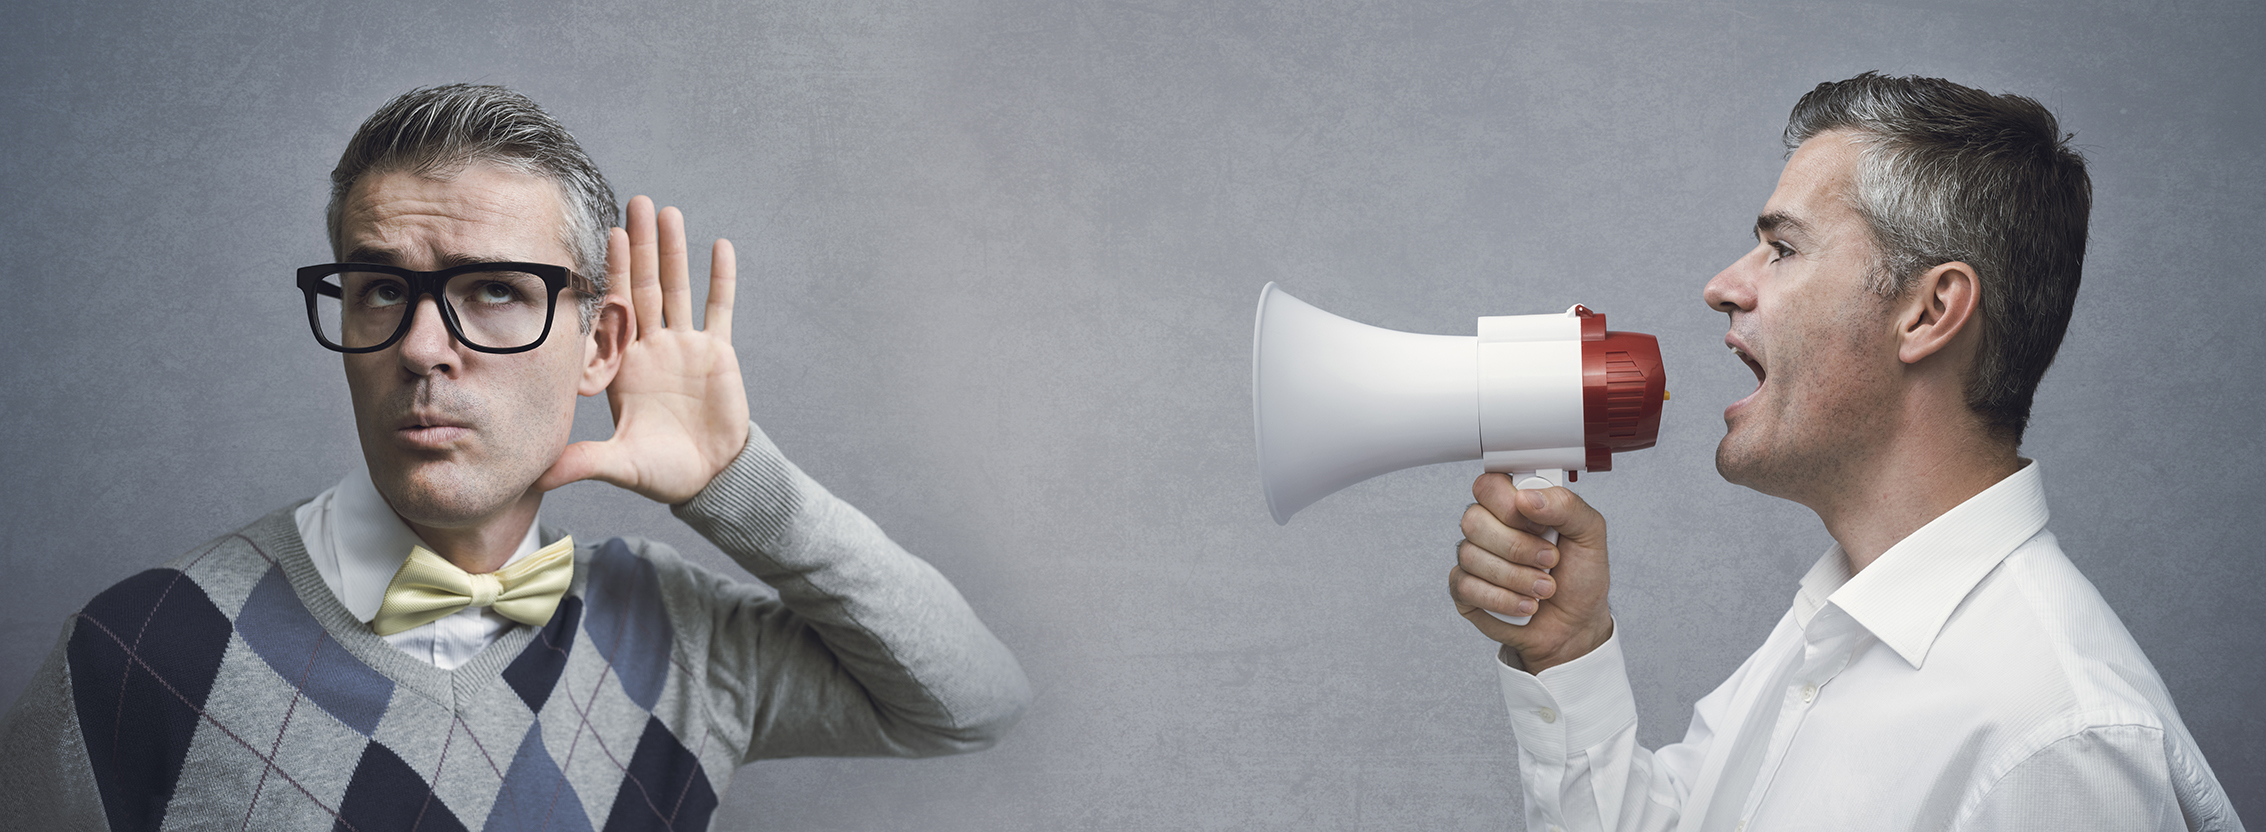 Confident man shouting with a megaphone and spreading his message, advertising and communication concept